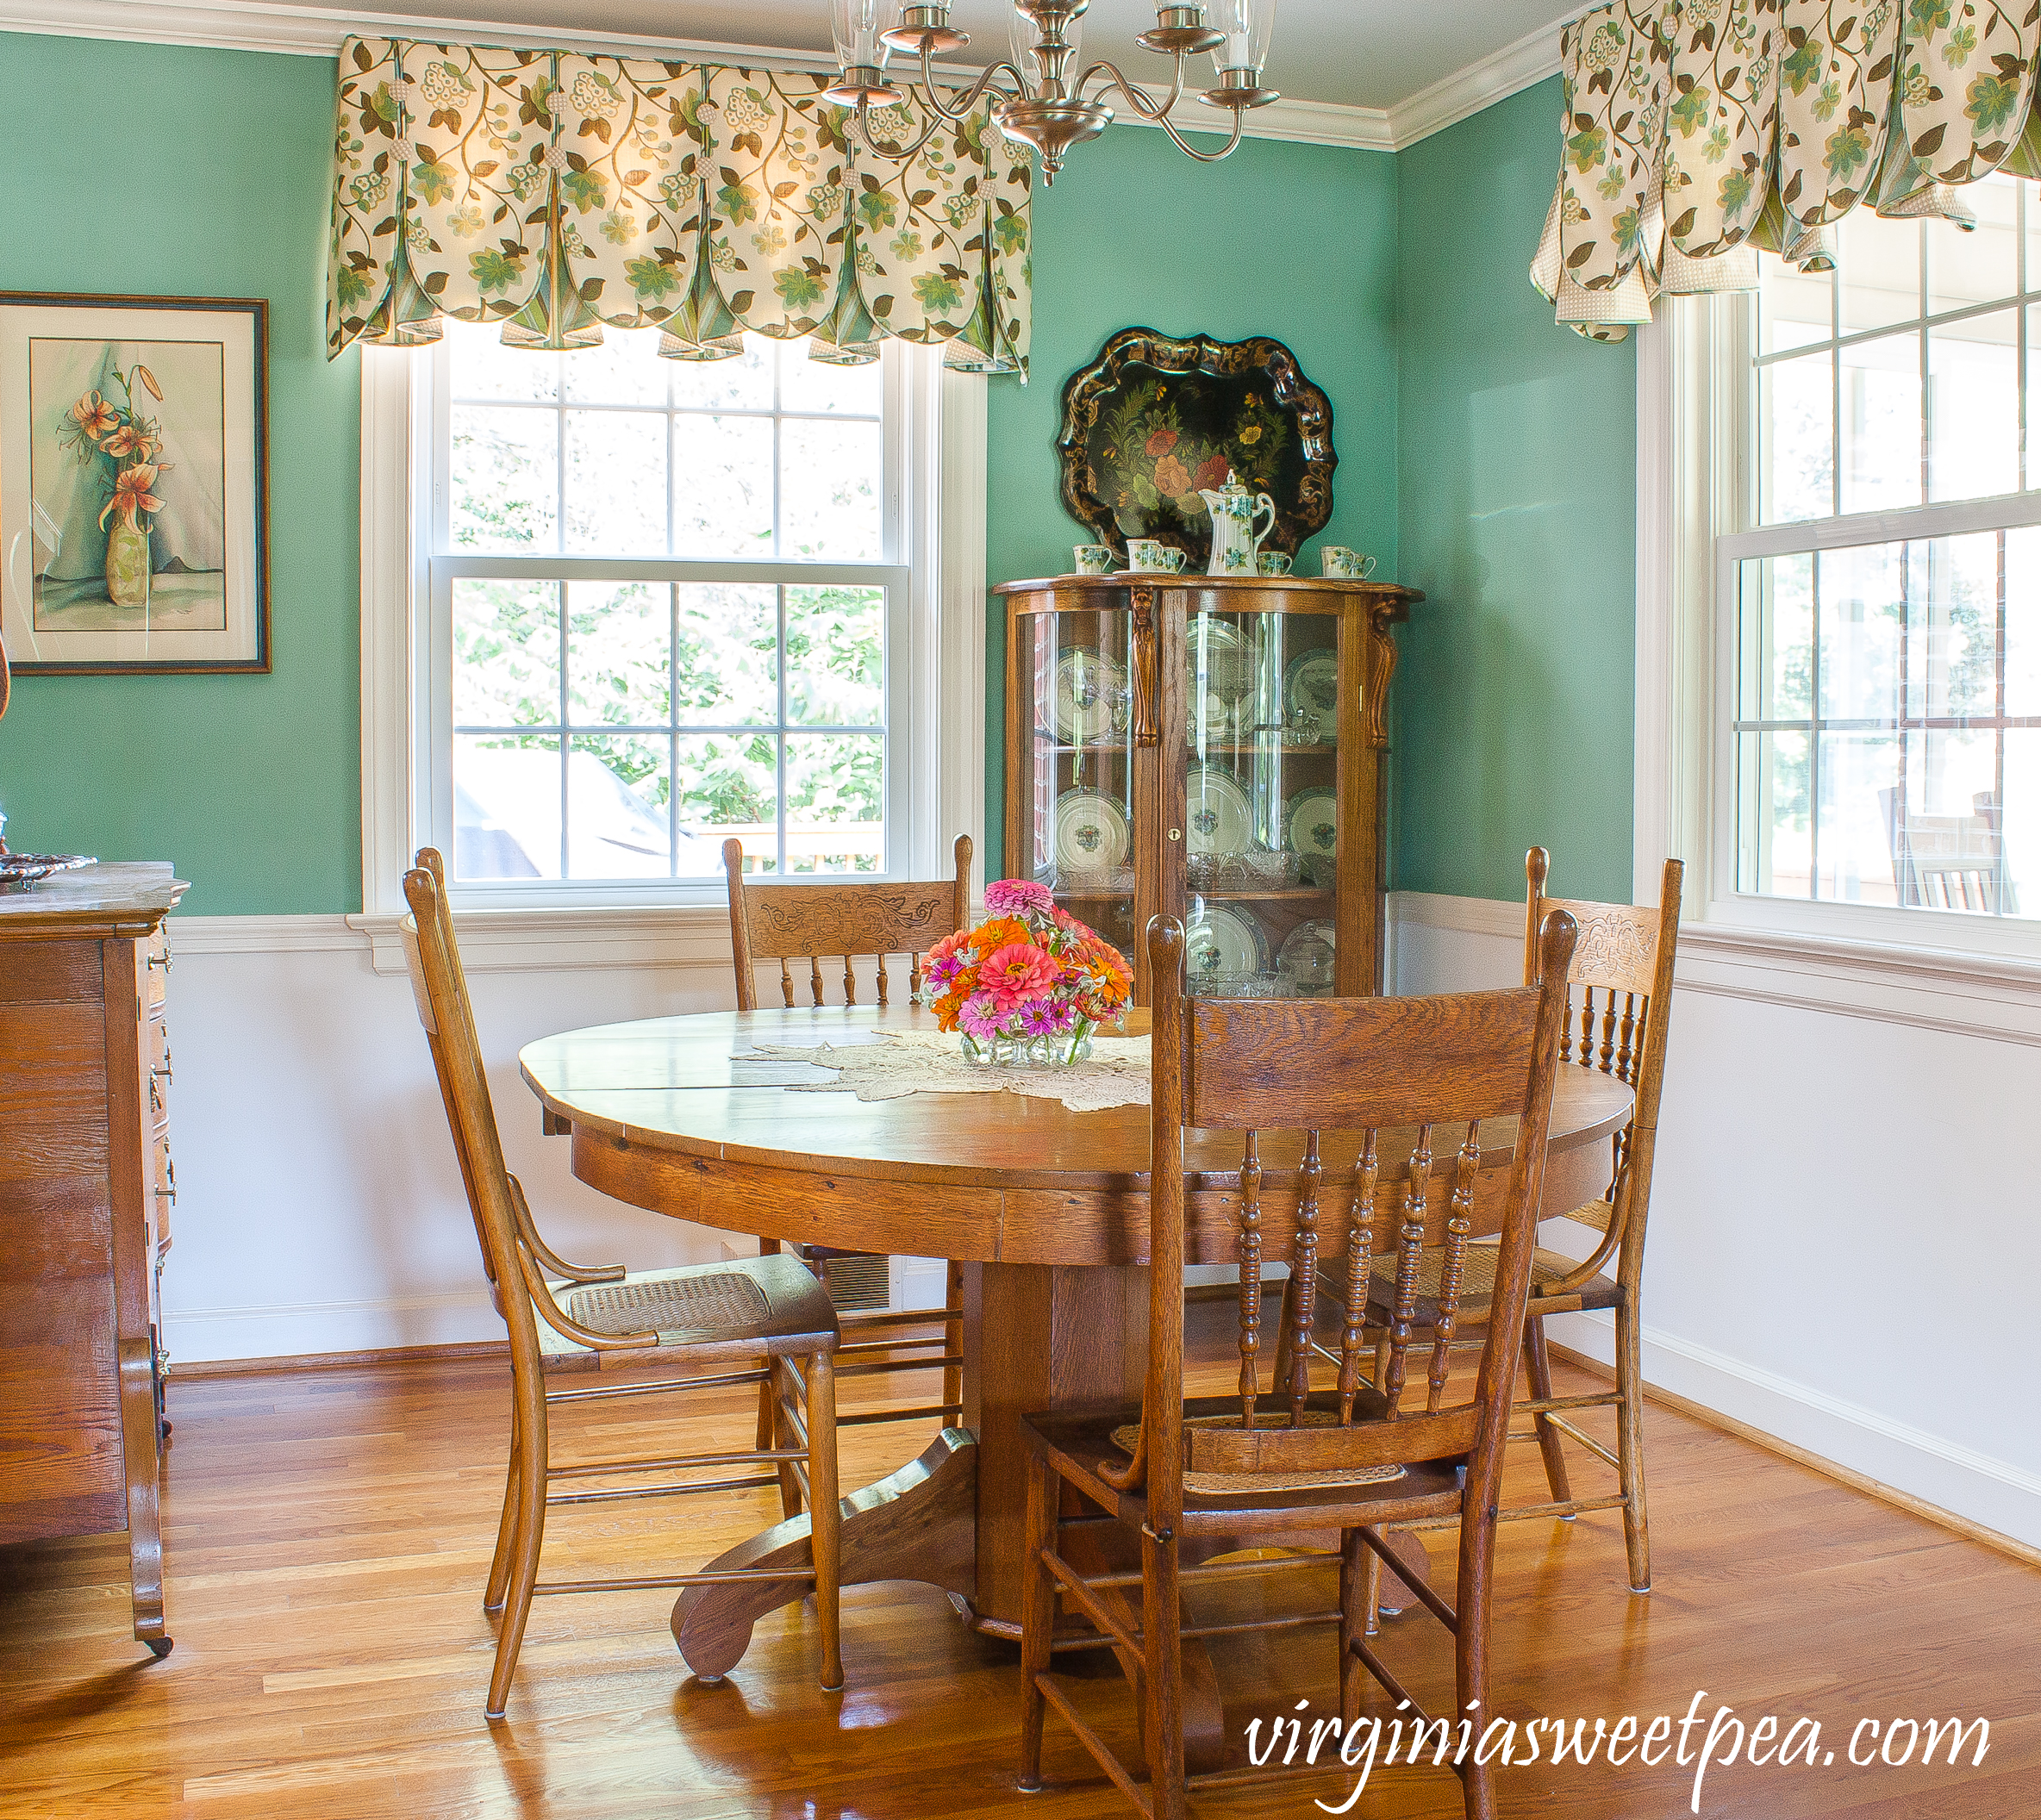 Dining room decorated with antique oak furniture.